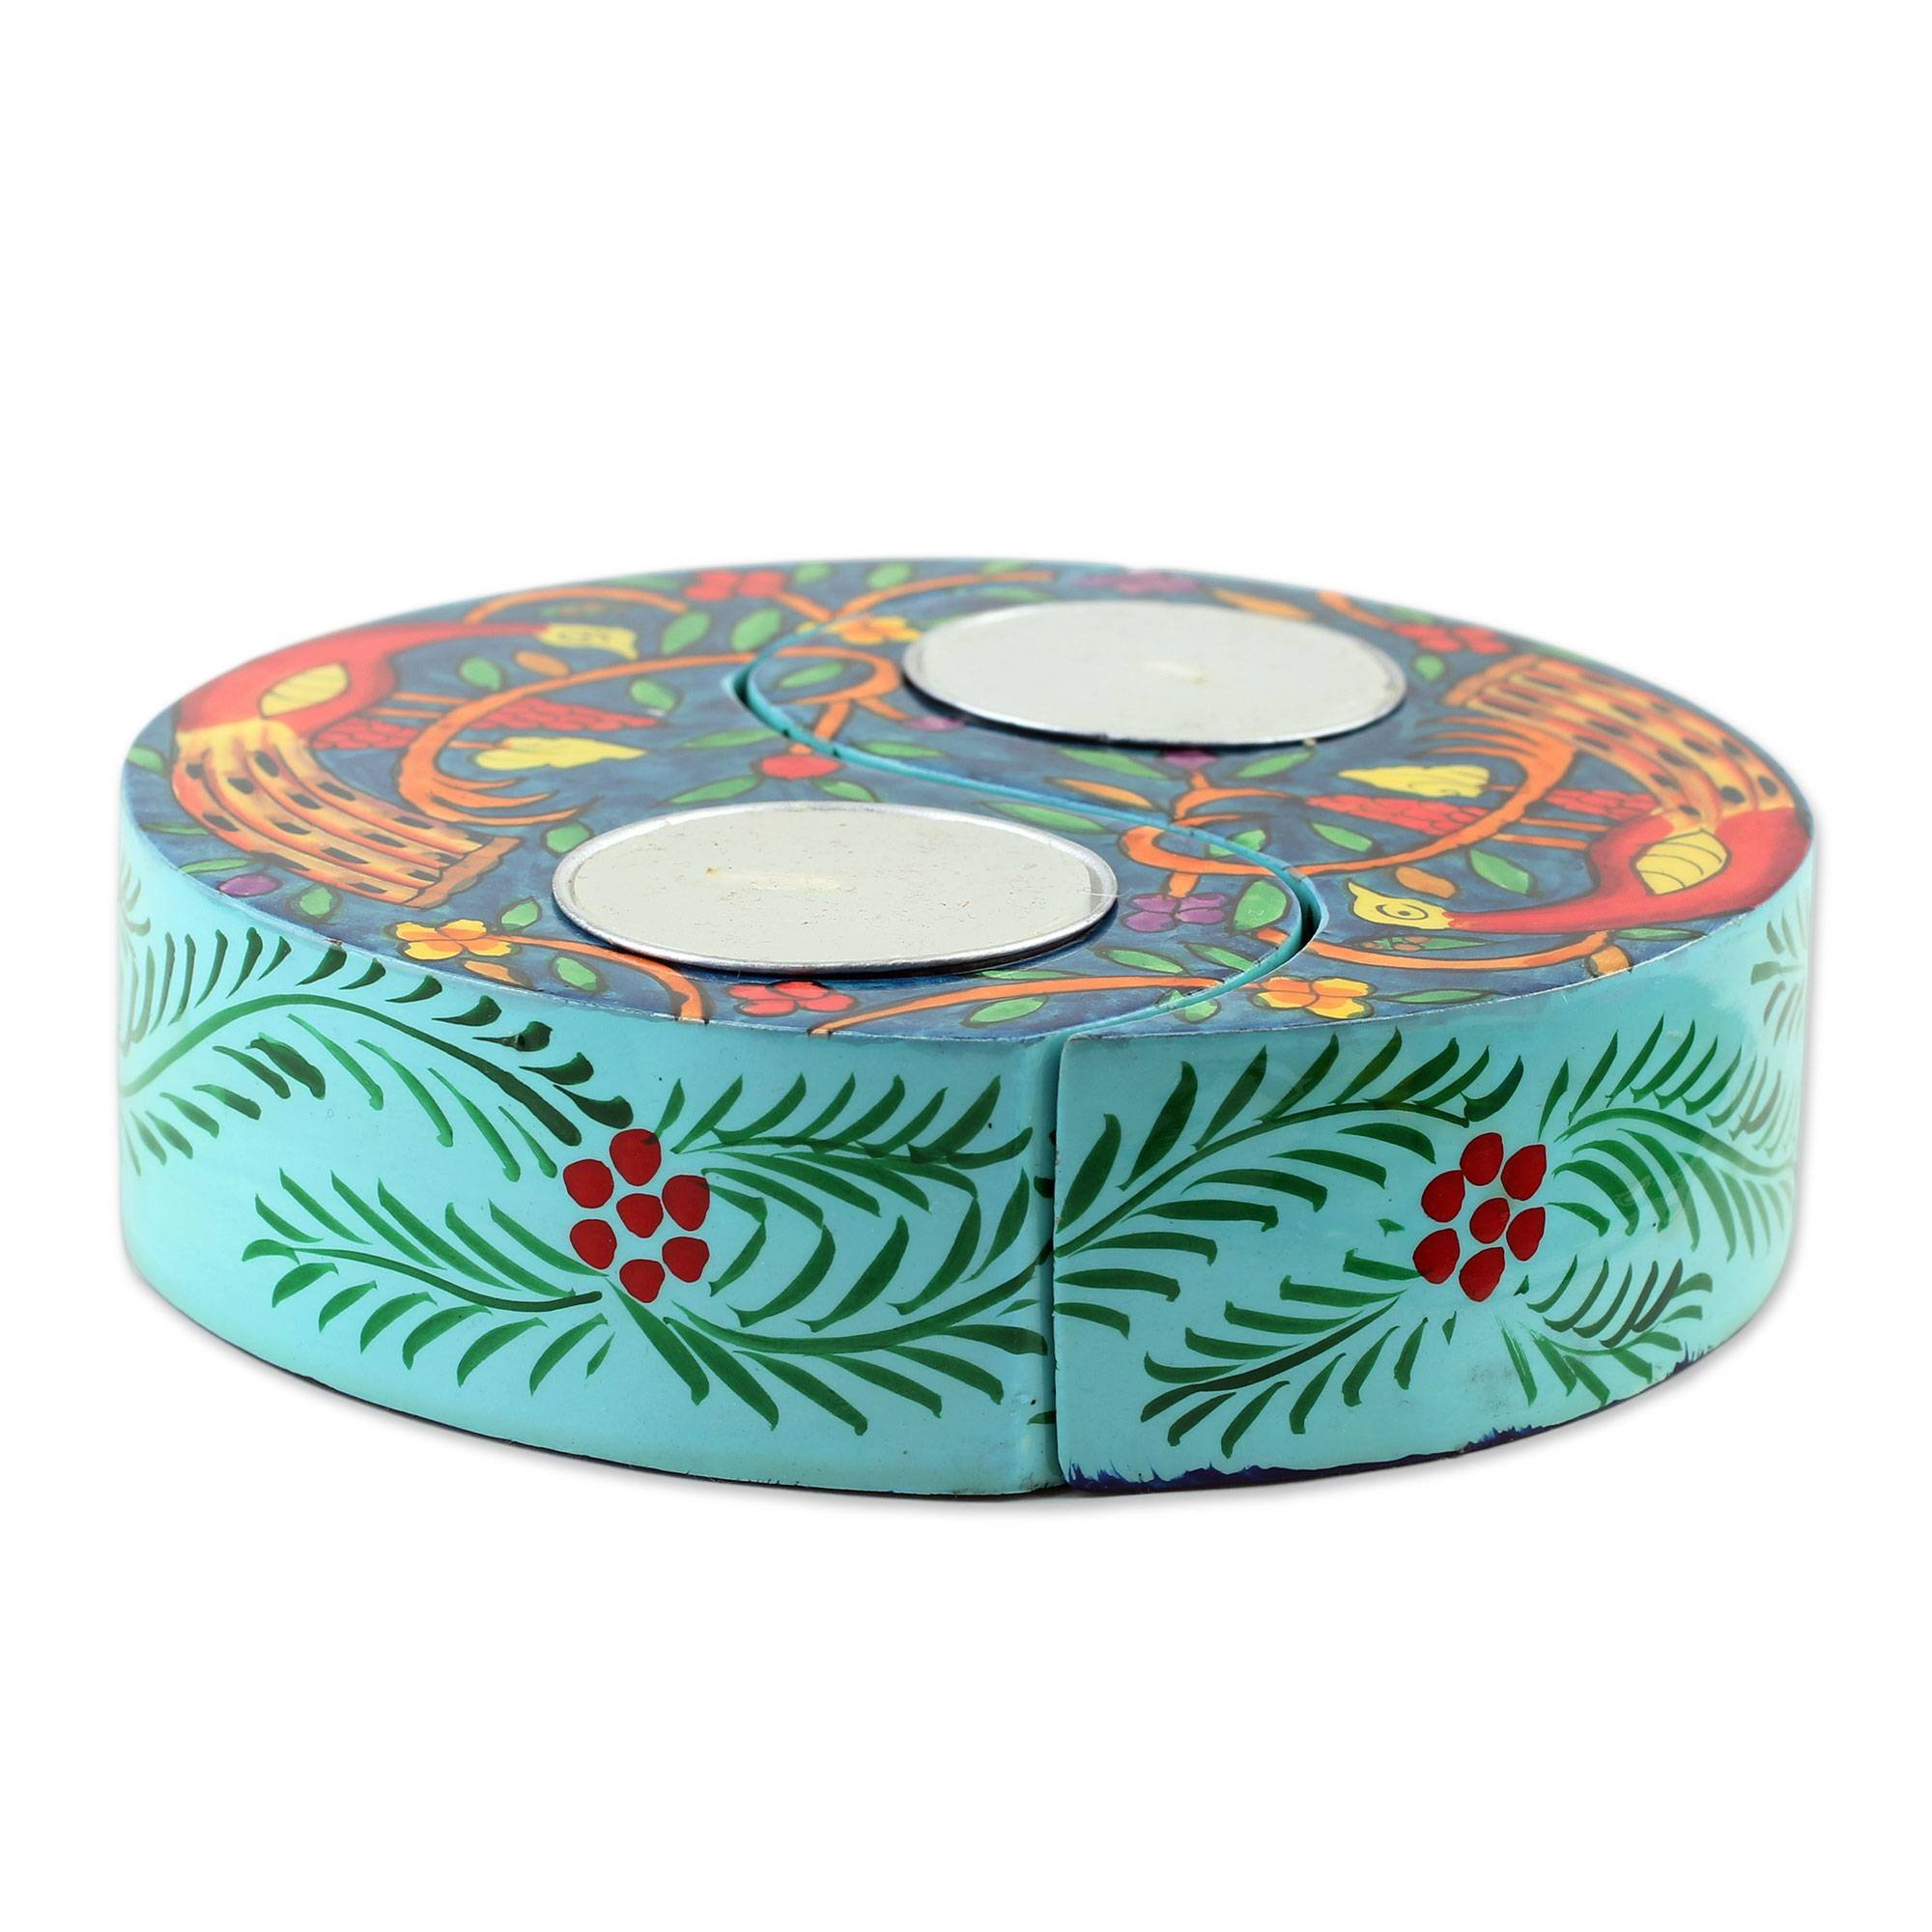 NOVICA Decorative Wood Animal Themed Candle Holder, Multicolor 'Peacock Garden' (Pair)